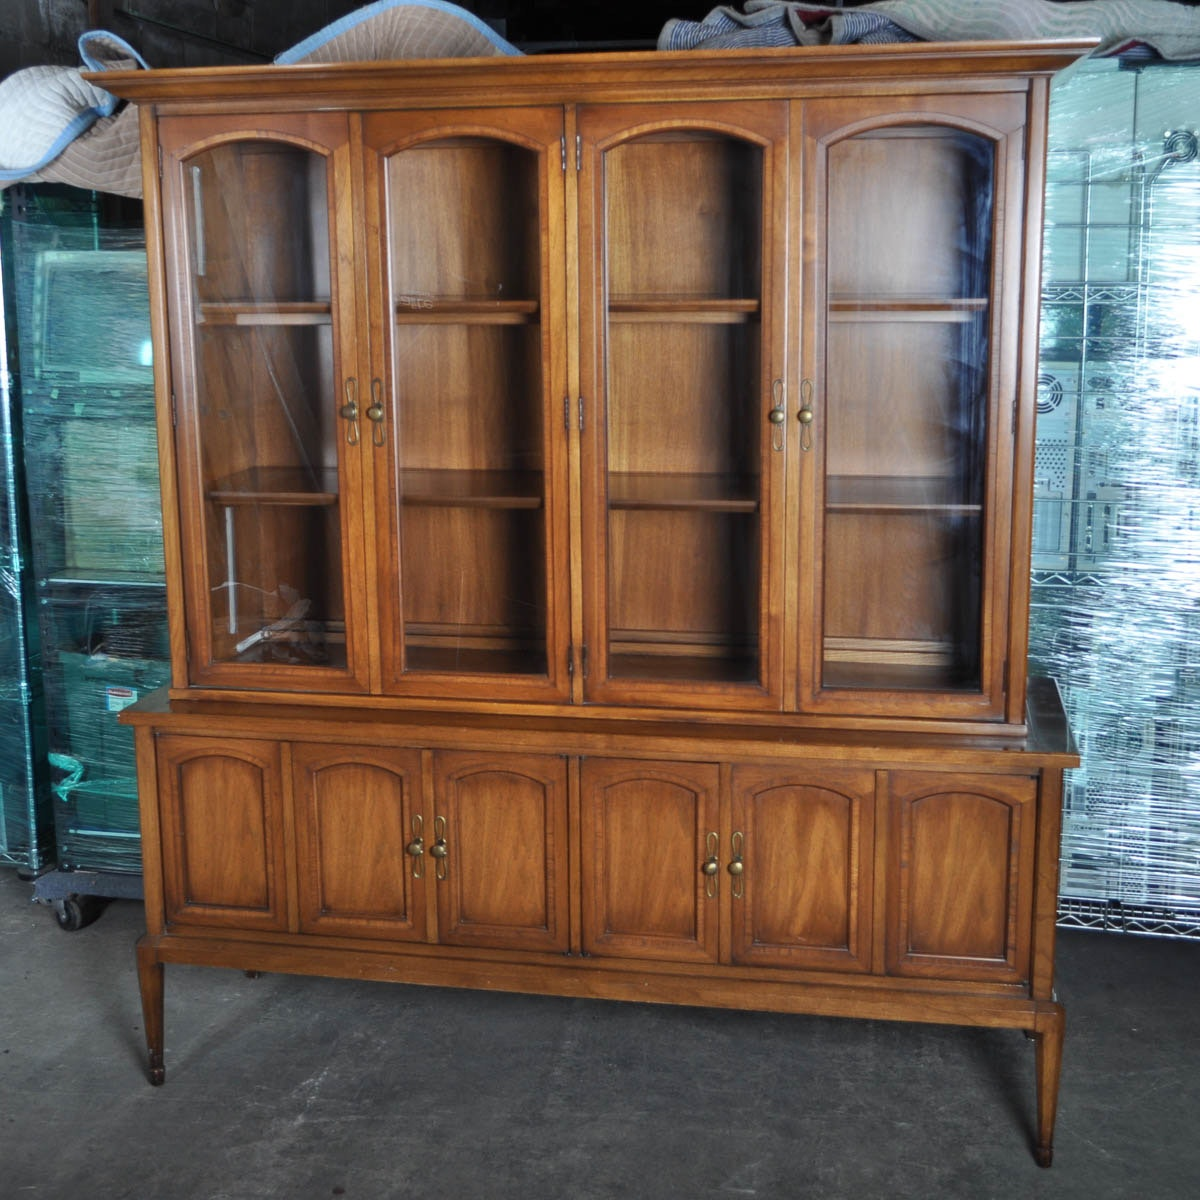 Vintage China Cabinet By White Furniture Company ...